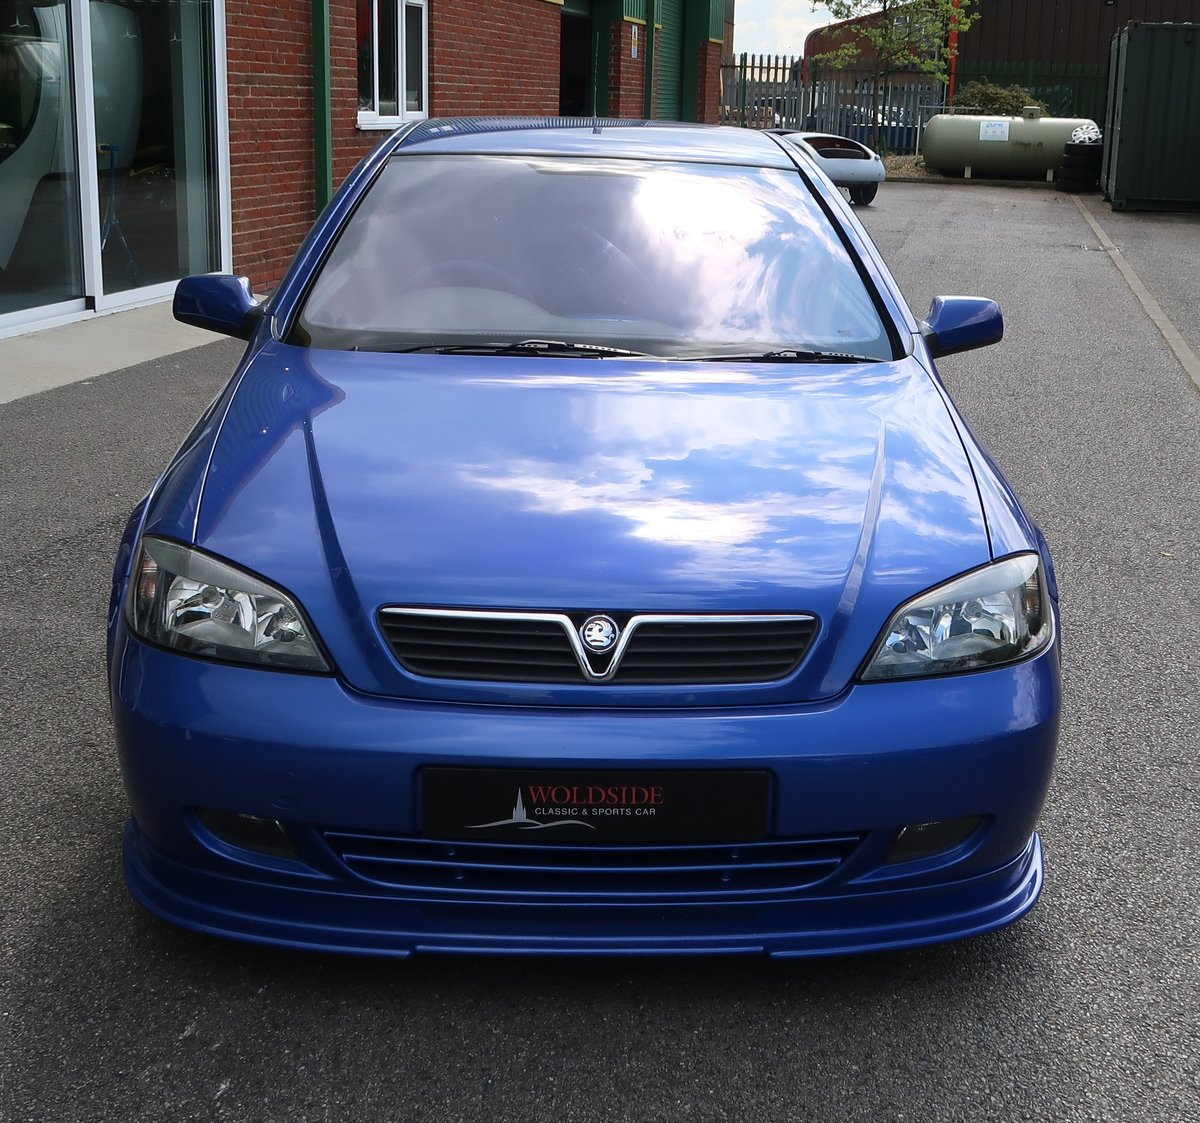 2002 Vauxhall Astra Triple 888 2.0i 16v Turbo Coupe SOLD